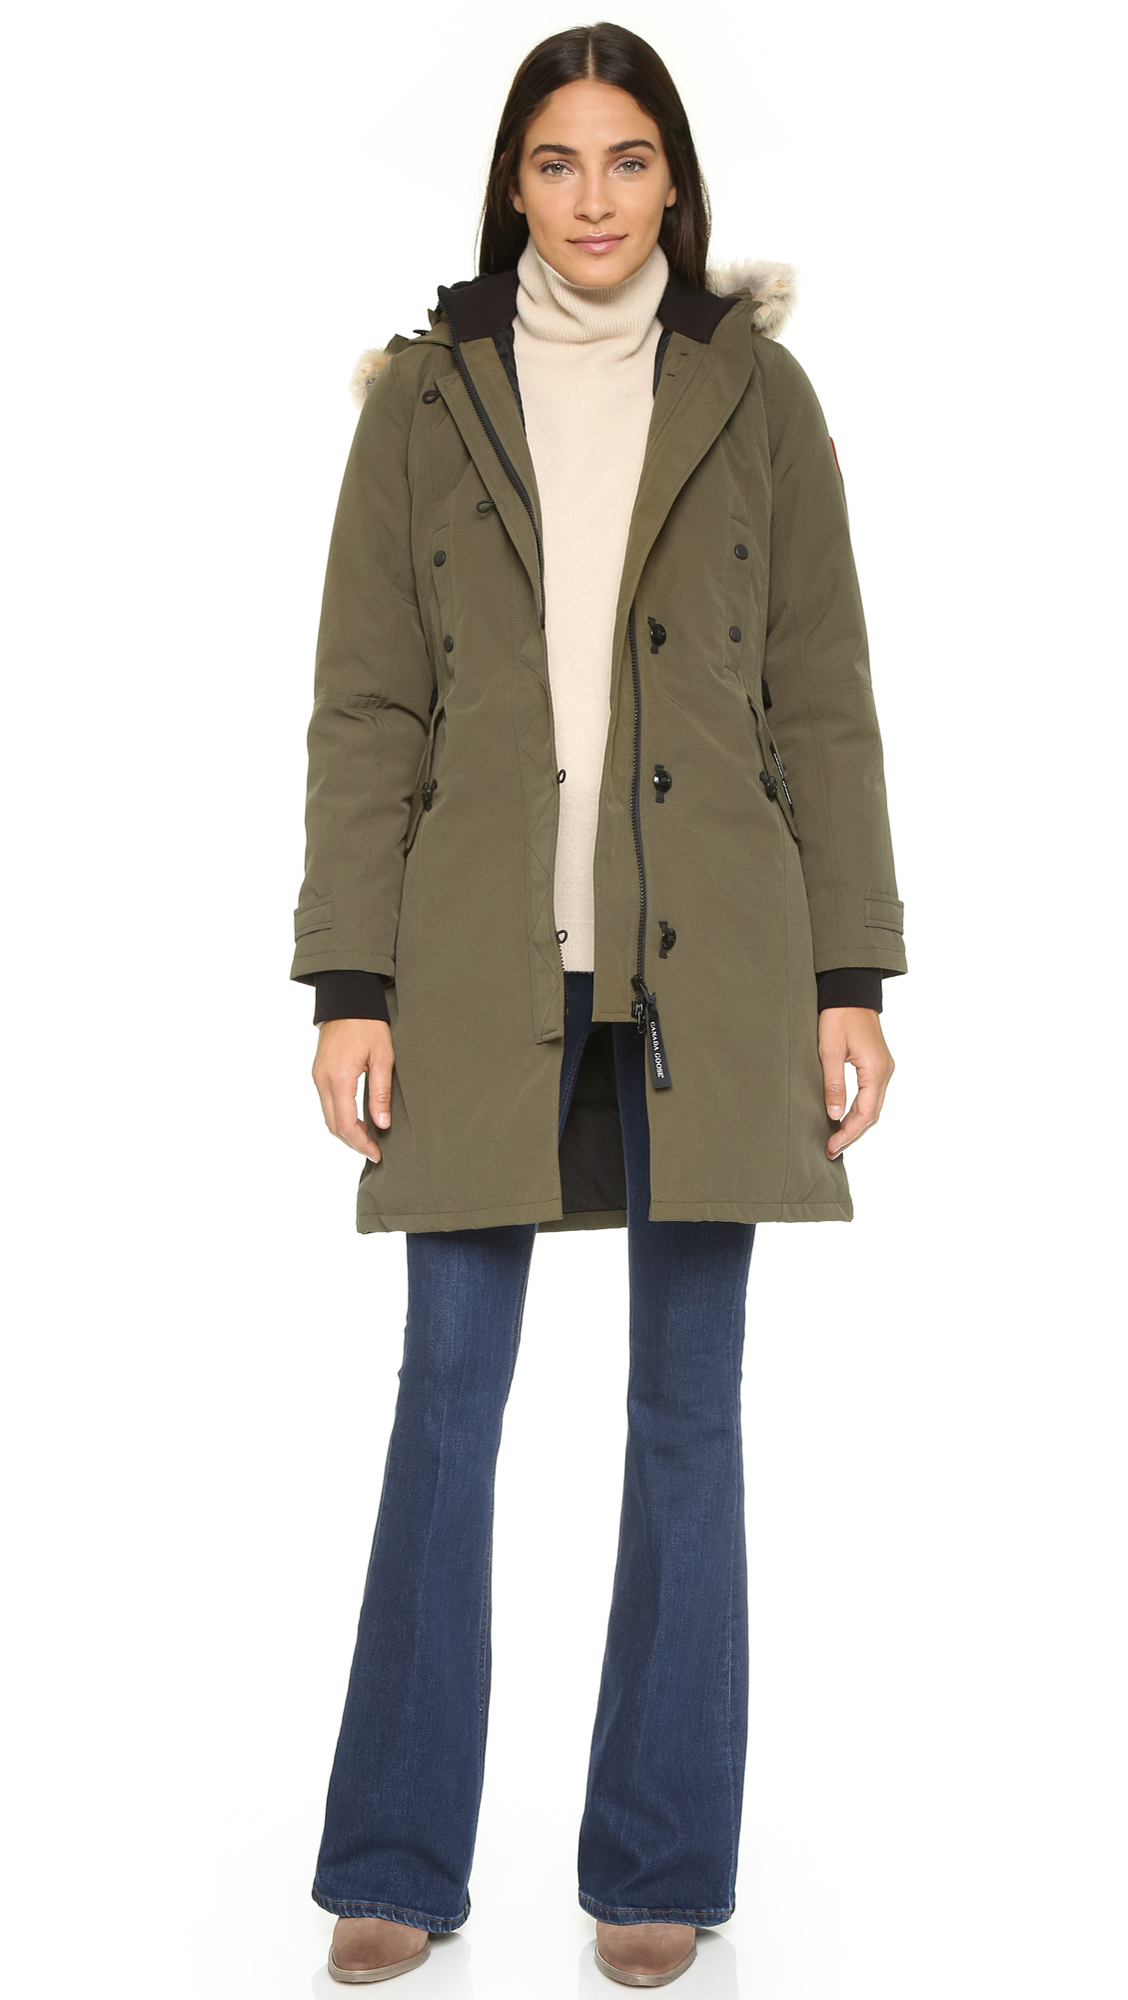 Canada Goose Kensington Parka | SHOPBOP SAVE UP TO 25% Use Code: STOCKUP18